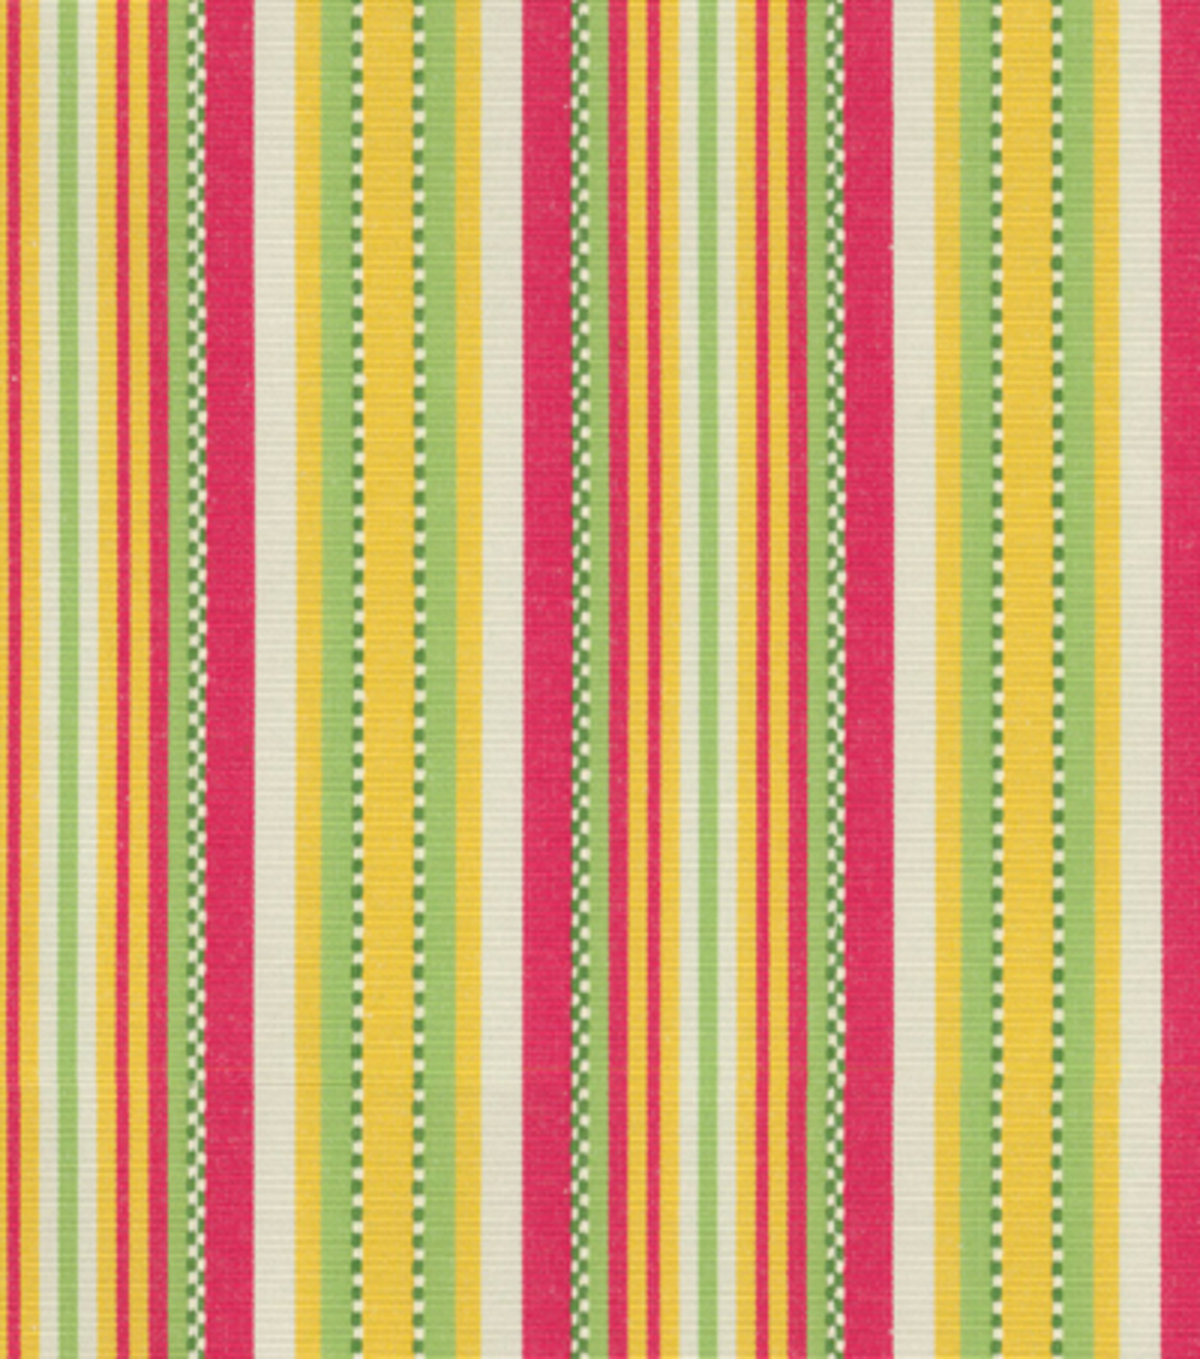 Home Decor 8\u0022x8\u0022 Fabric Swatch-Upholstery Fabric-Waverly Sweet Stripe/Sorbet